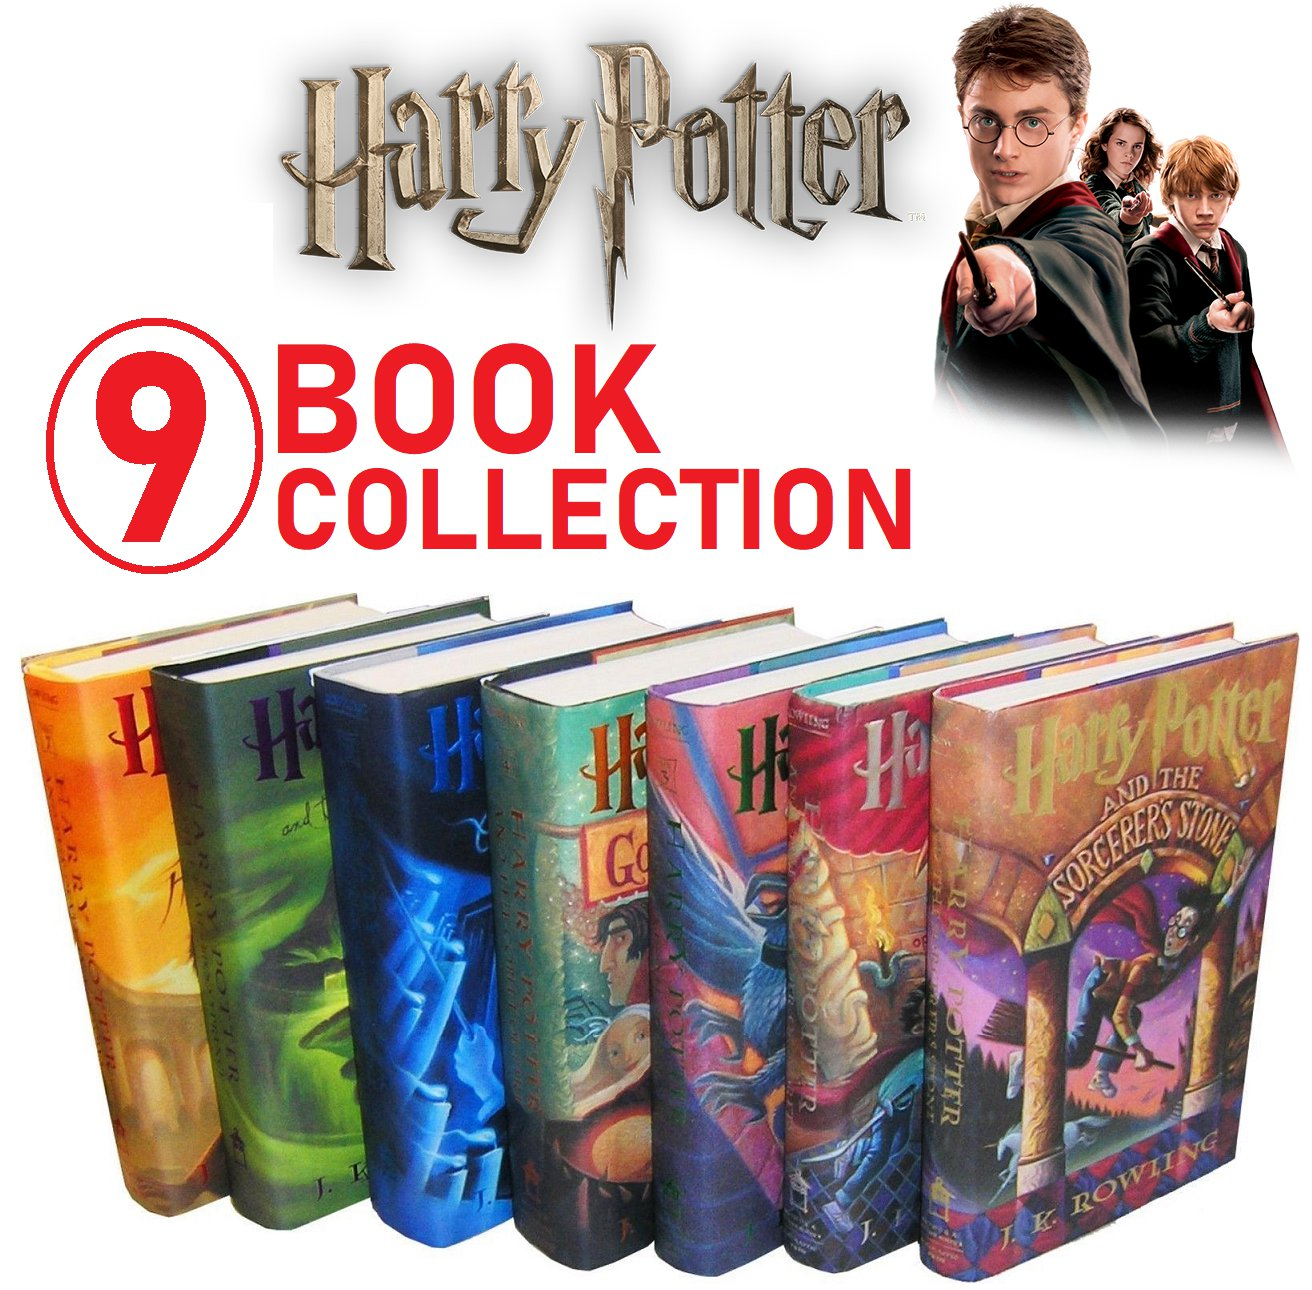 pdf ebook Books 1-7 Harry Potter The Complete Collection